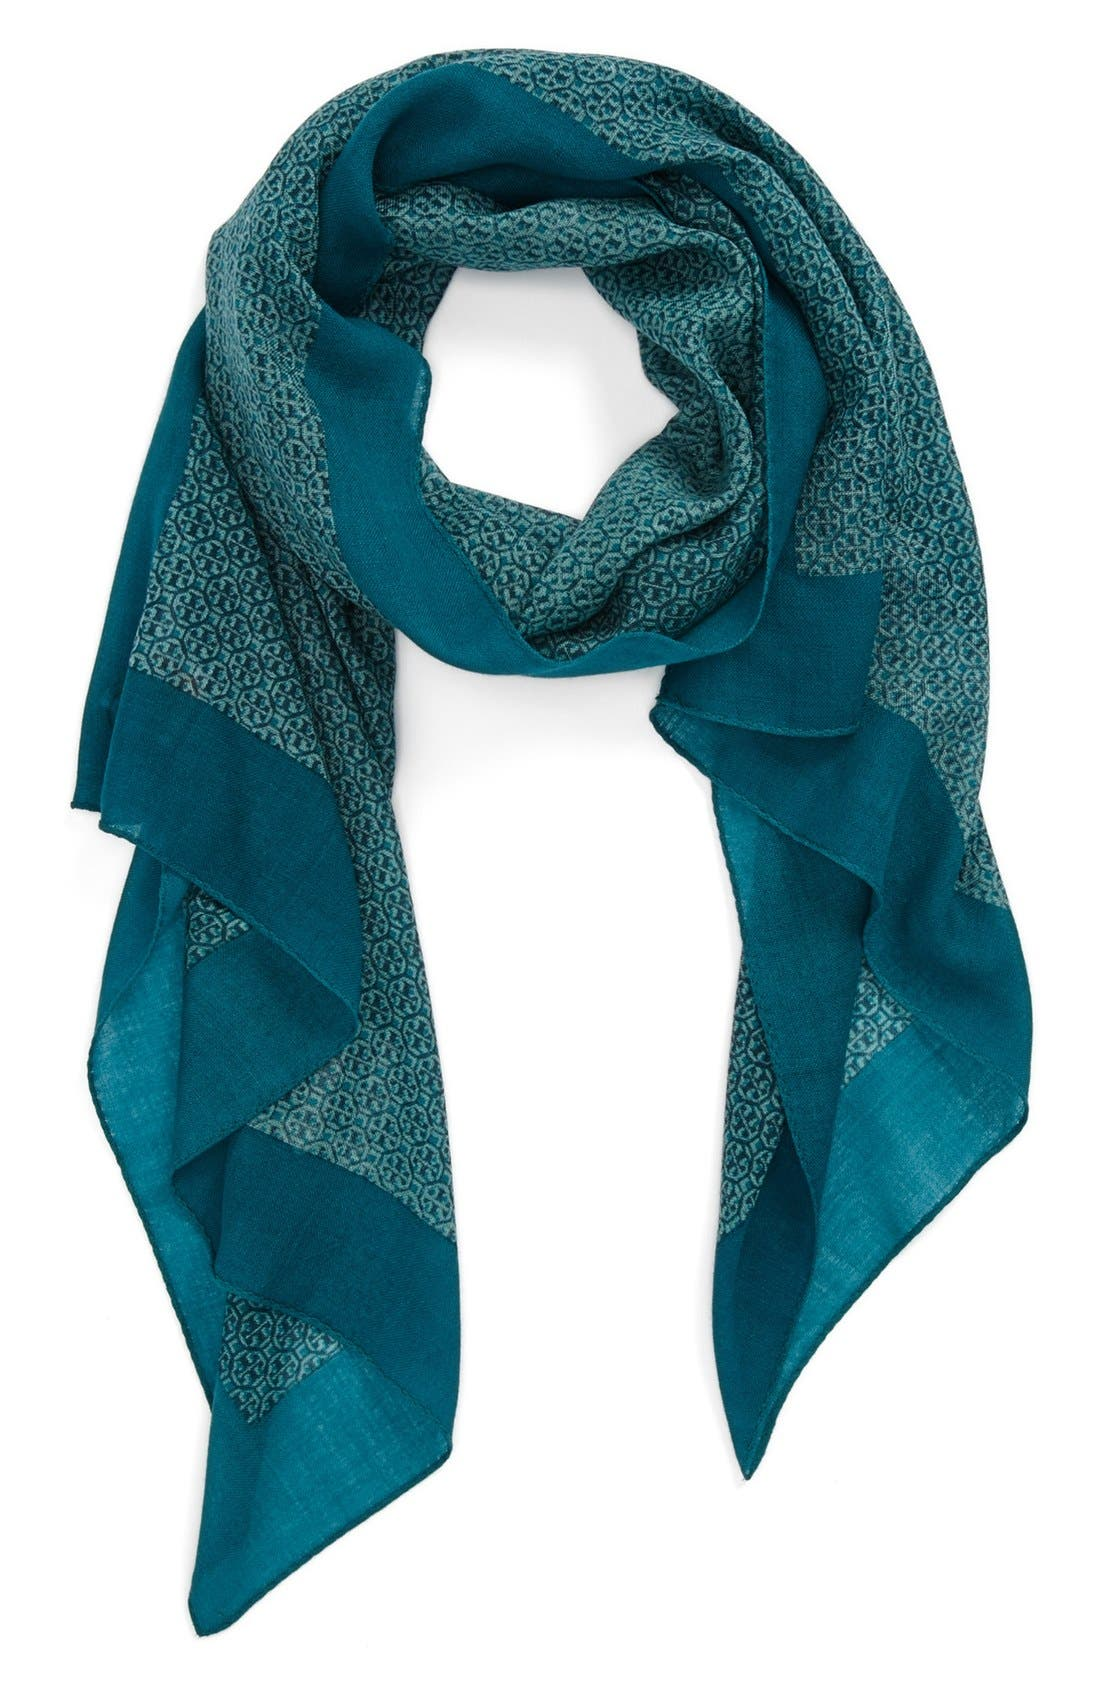 Alternate Image 1 Selected - Tory Burch 'Logo Lattice' Wool Scarf